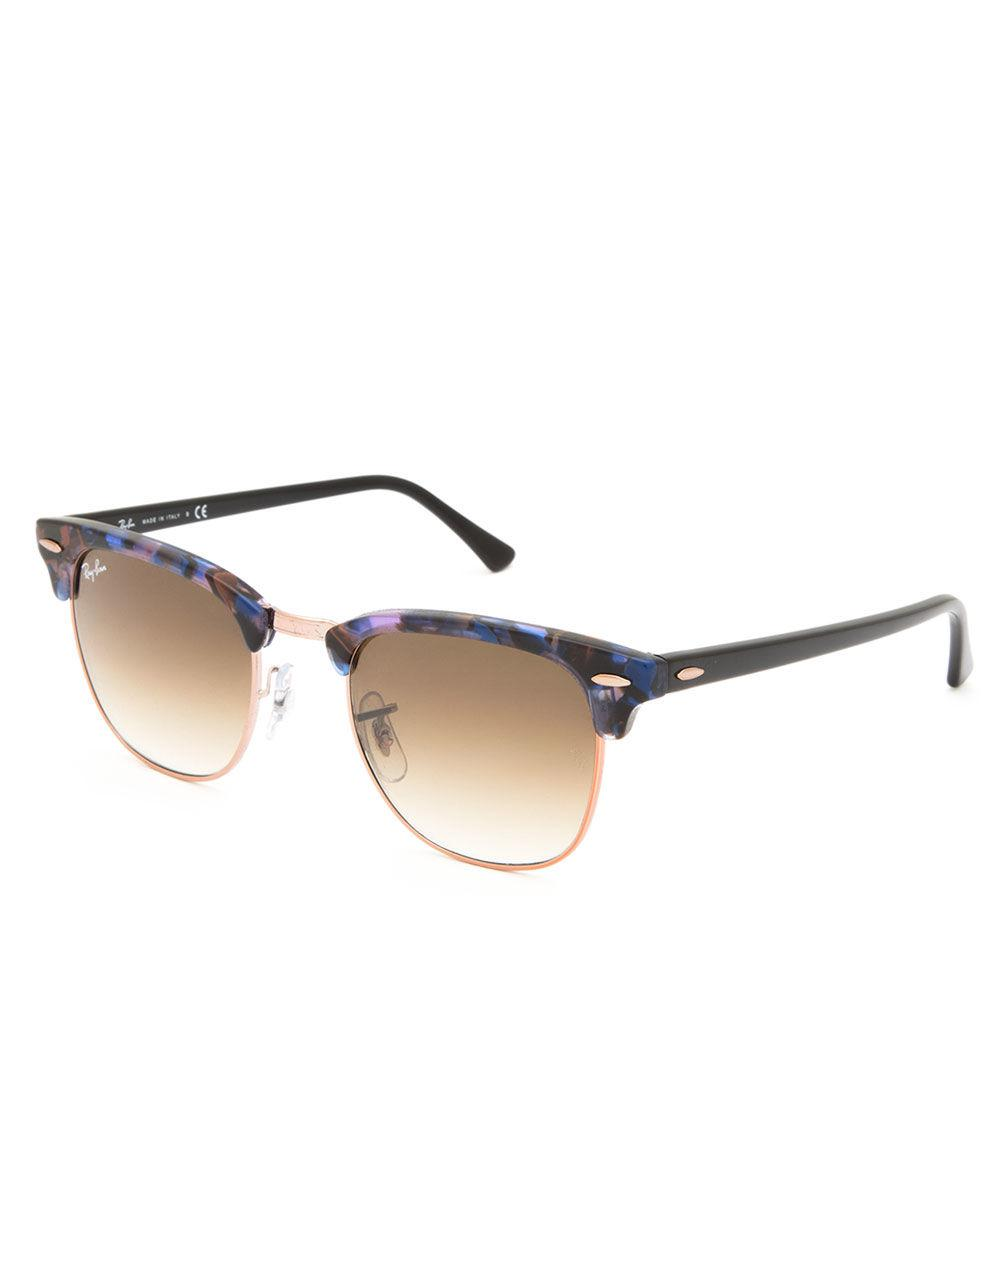 Lyst - Ray-Ban Clubmaster Fleck Spotted Brown   Blue Sunglasses in Brown ccbedf63ac